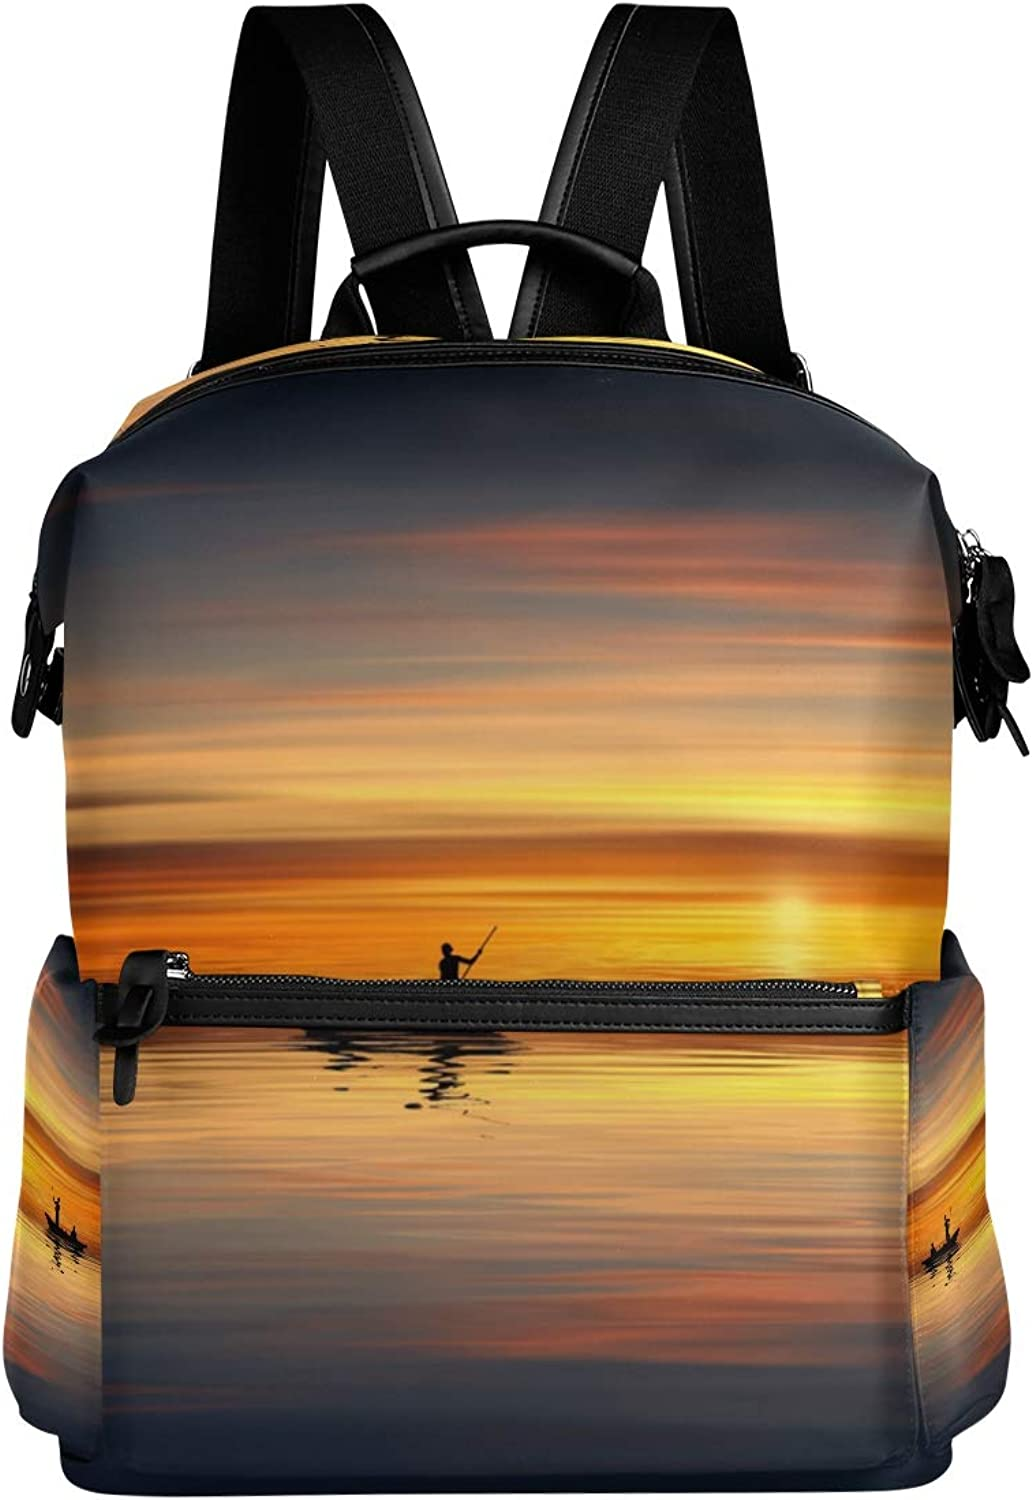 MONTOJ Lonely Boat Sunset Sea Leather Travel Bag Campus Backpack